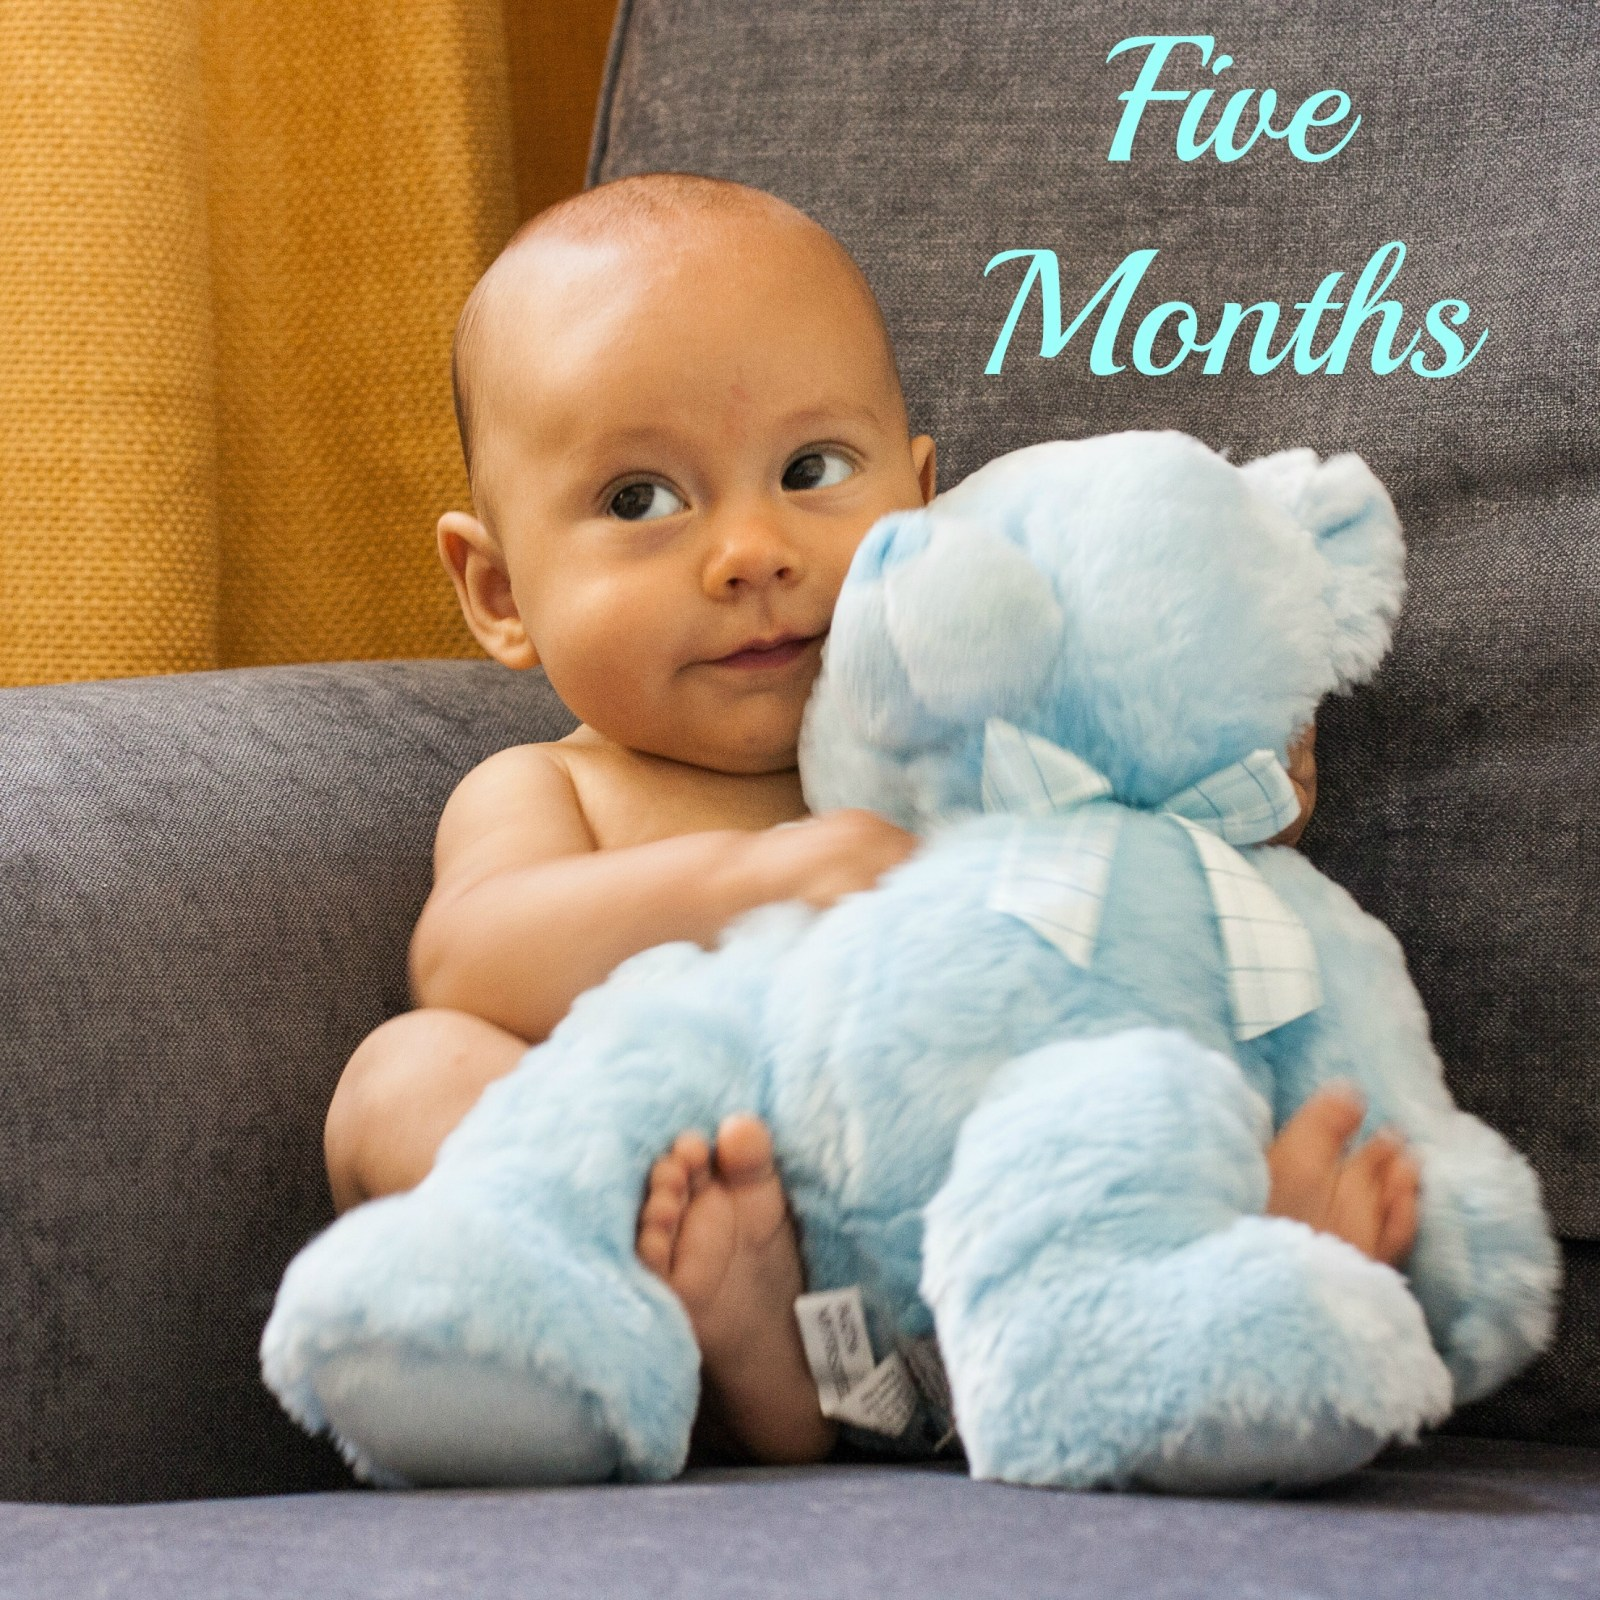 Charleston Michael: Five Months